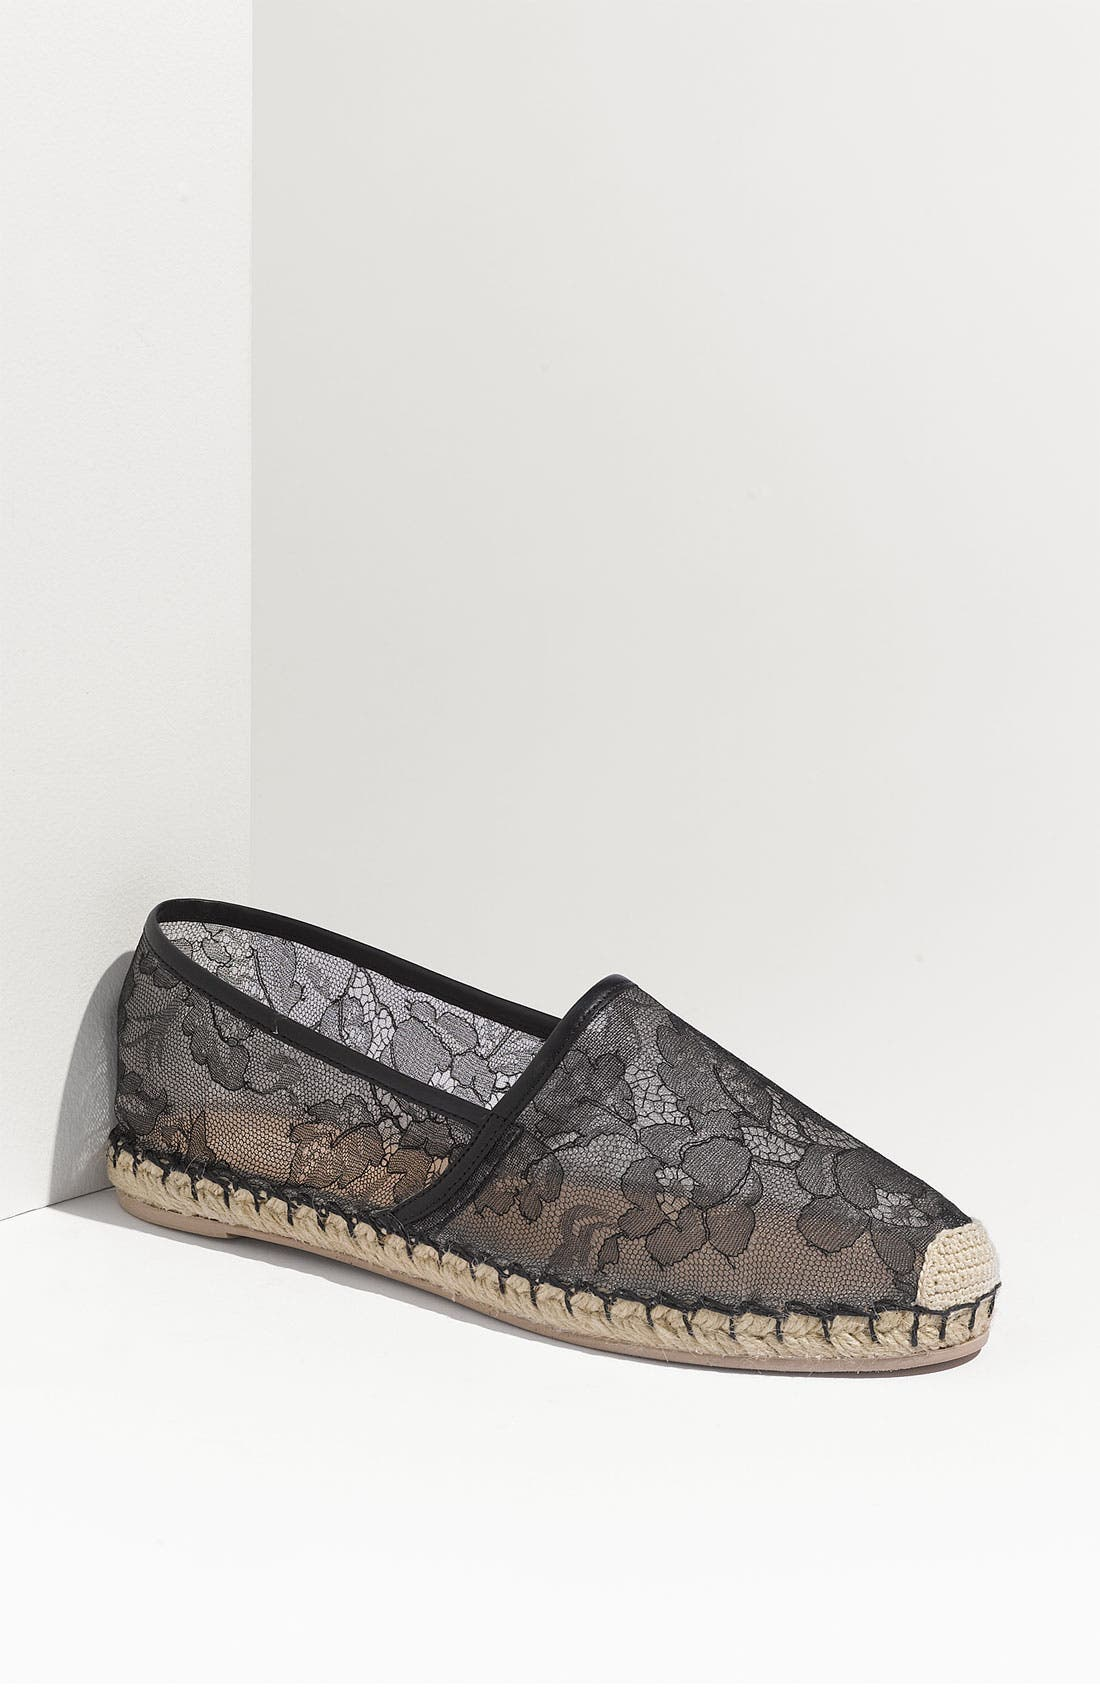 Alternate Image 1 Selected - VALENTINO GARAVANI Lace Flat Espadrille